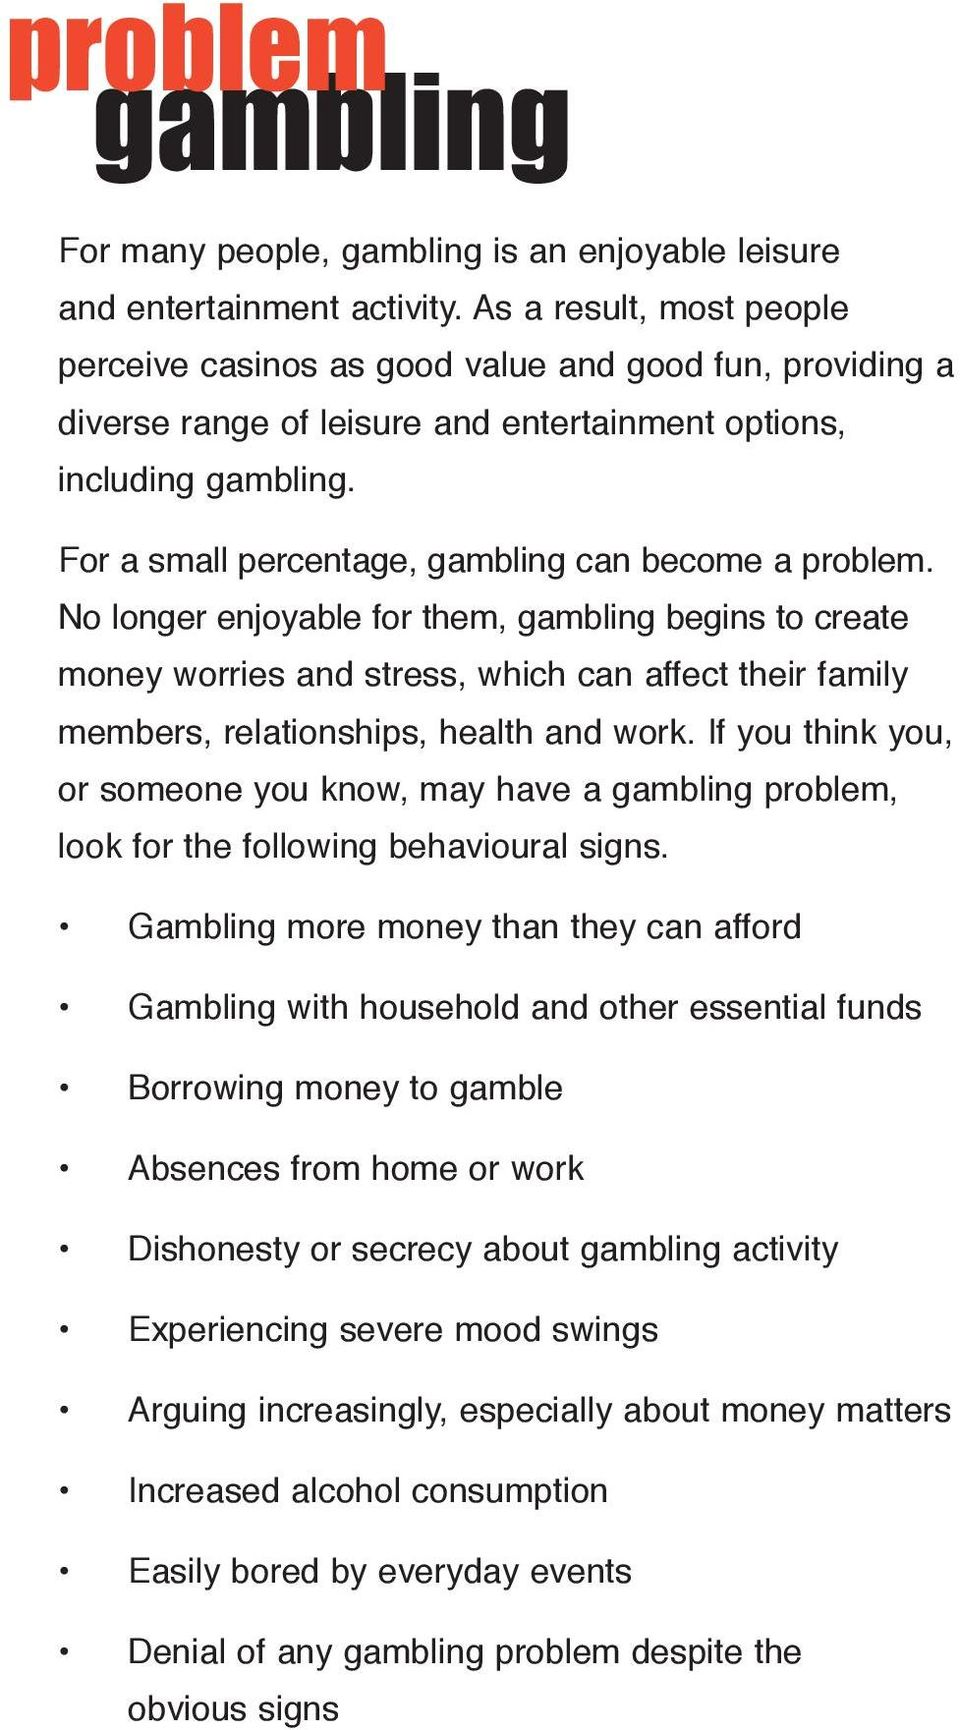 For a small percentage, gambling can become a problem.